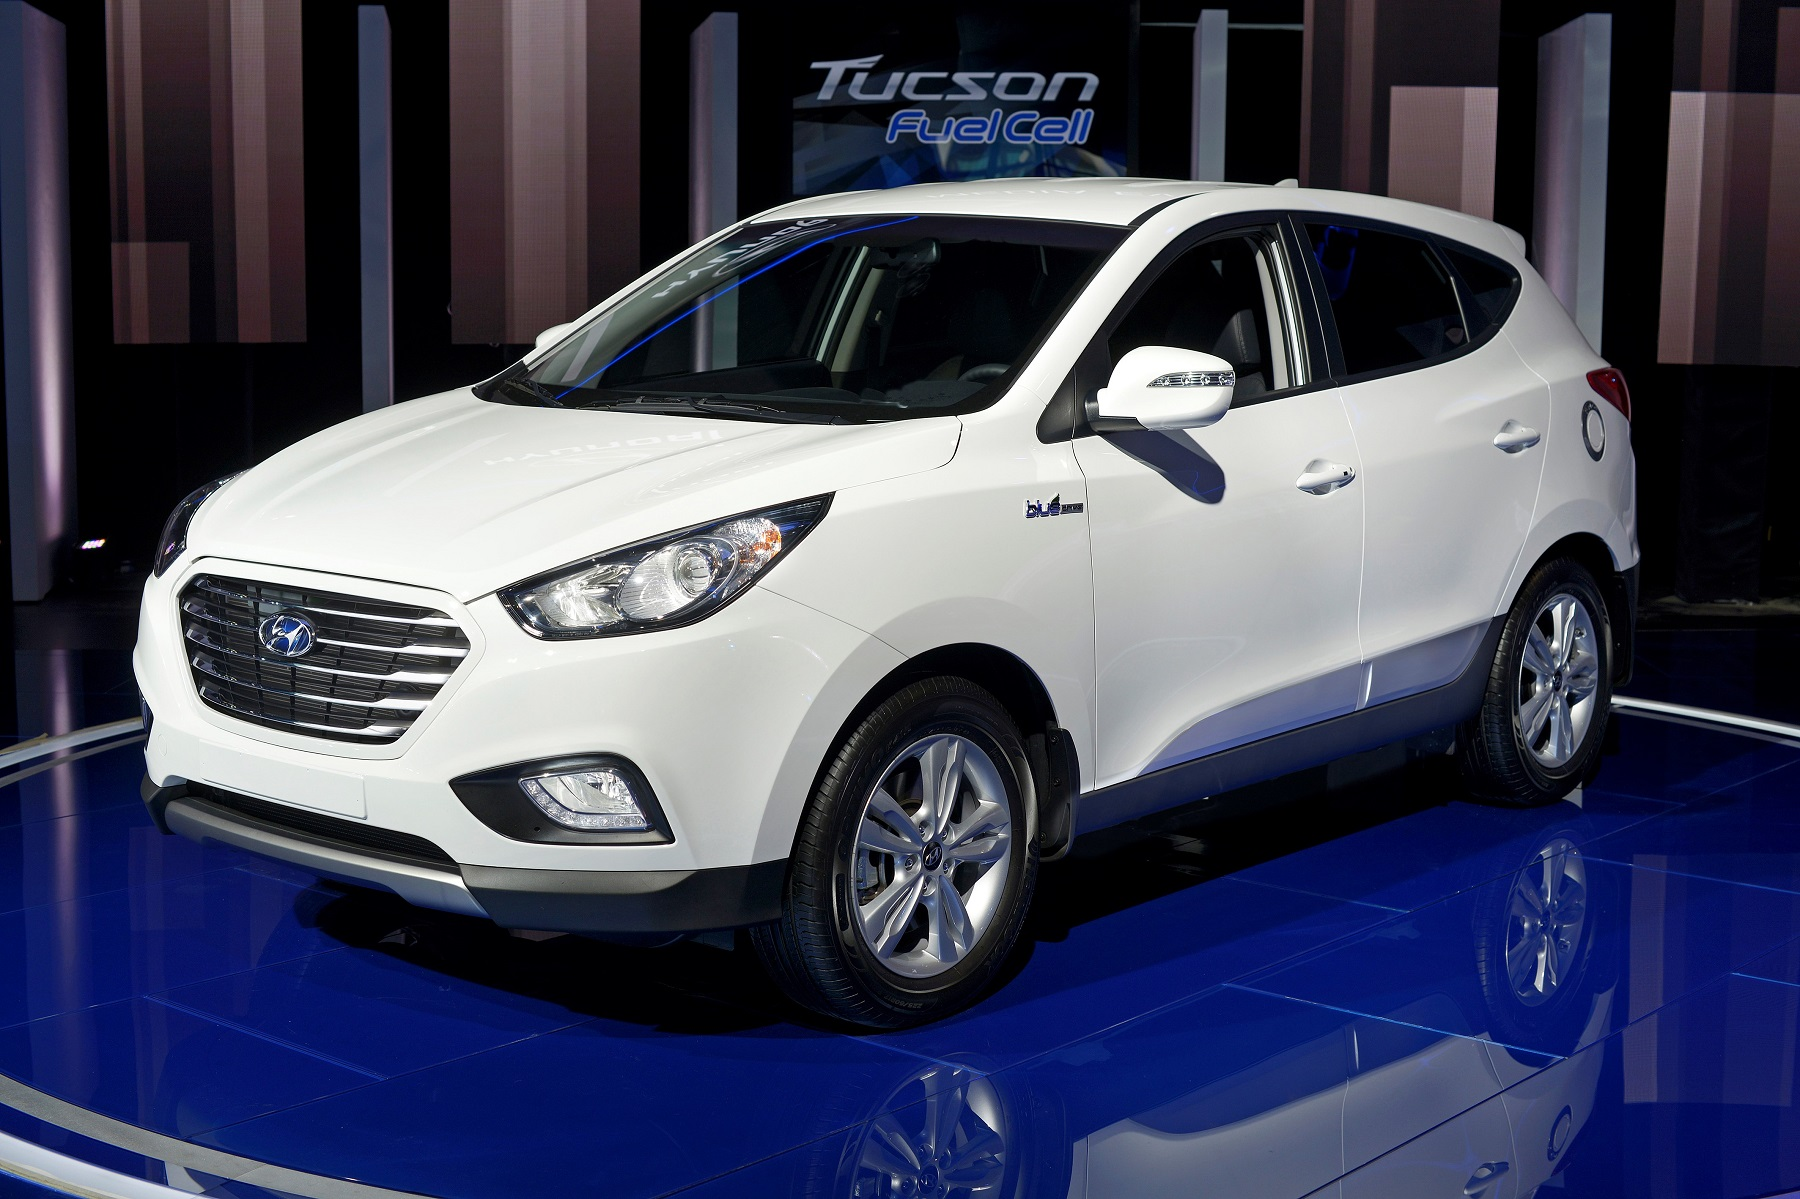 Manufacturer photo: Hyundai is introducing its Tucson Fuel Cell to alleviate the limitations of traditional battery electric vehicles